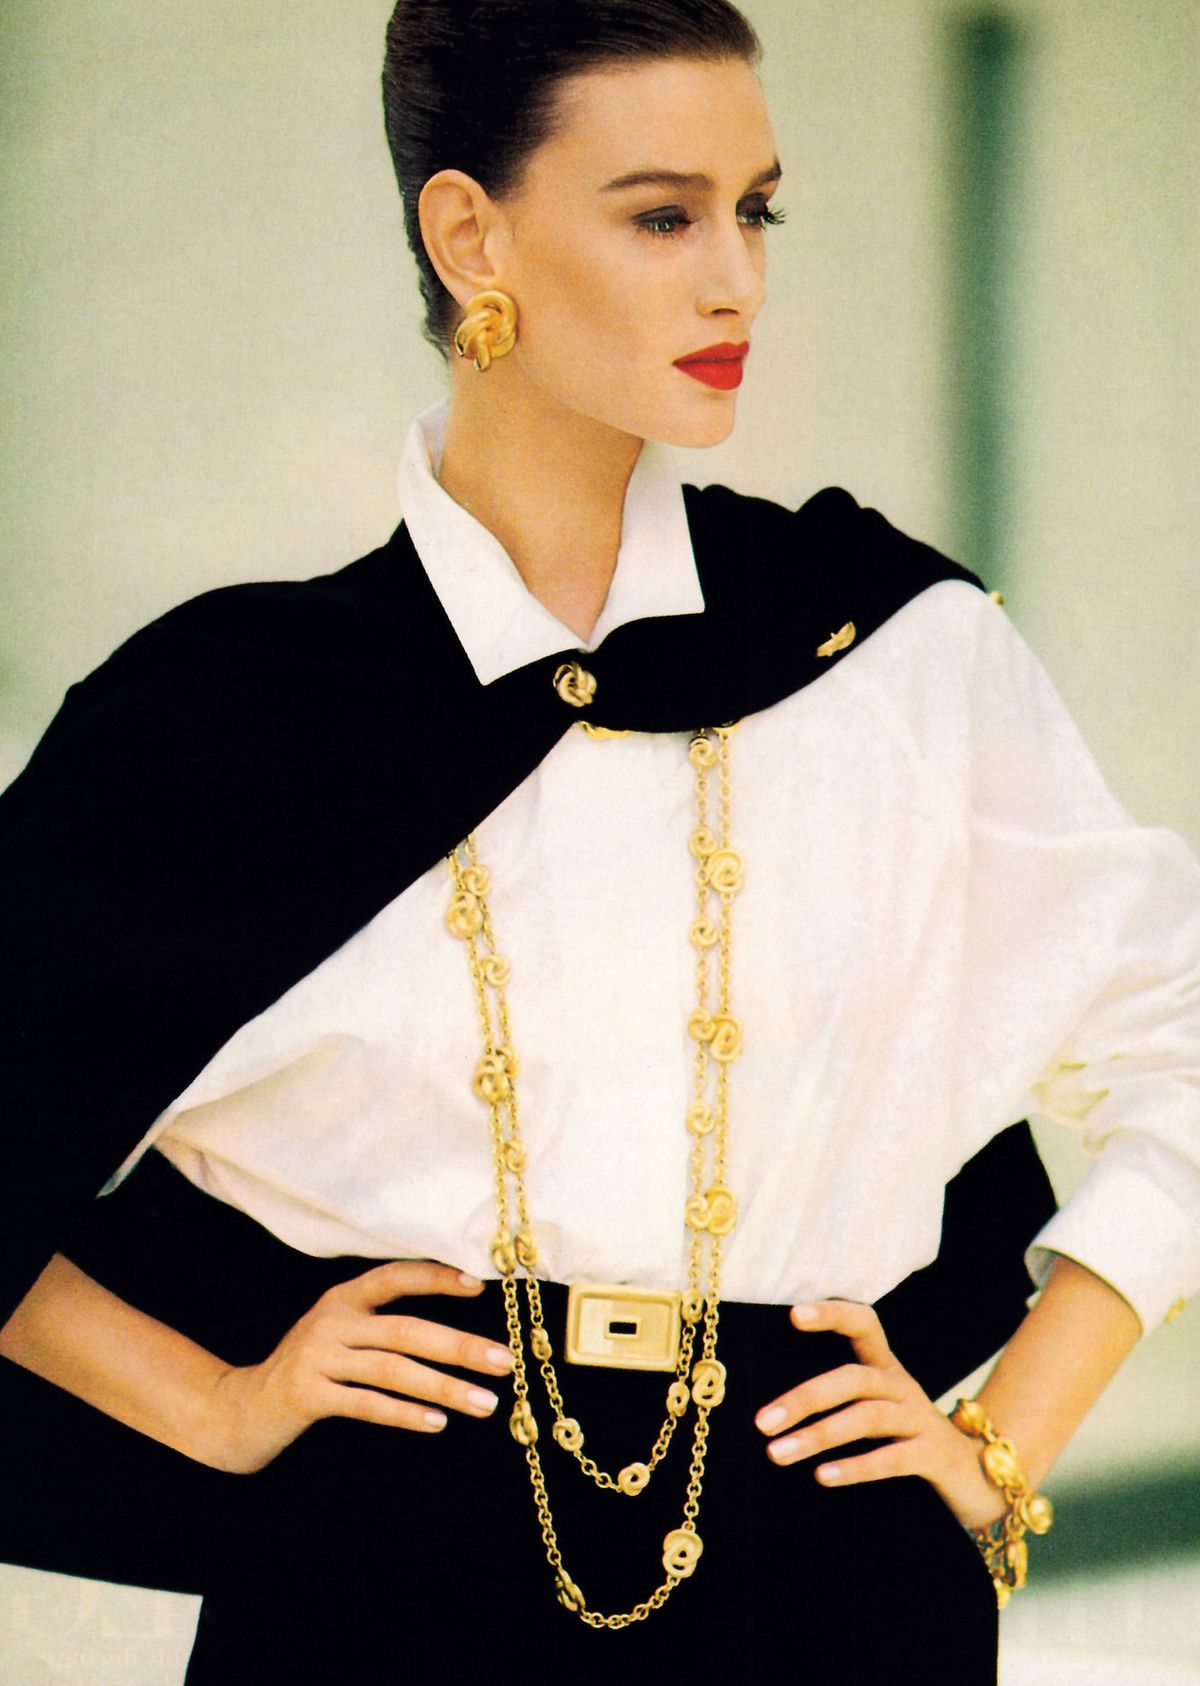 Anne Klein, American Vogue, February 1989. Photograph by Arthur Elgort. Repinned by www.lecastingparisien.com